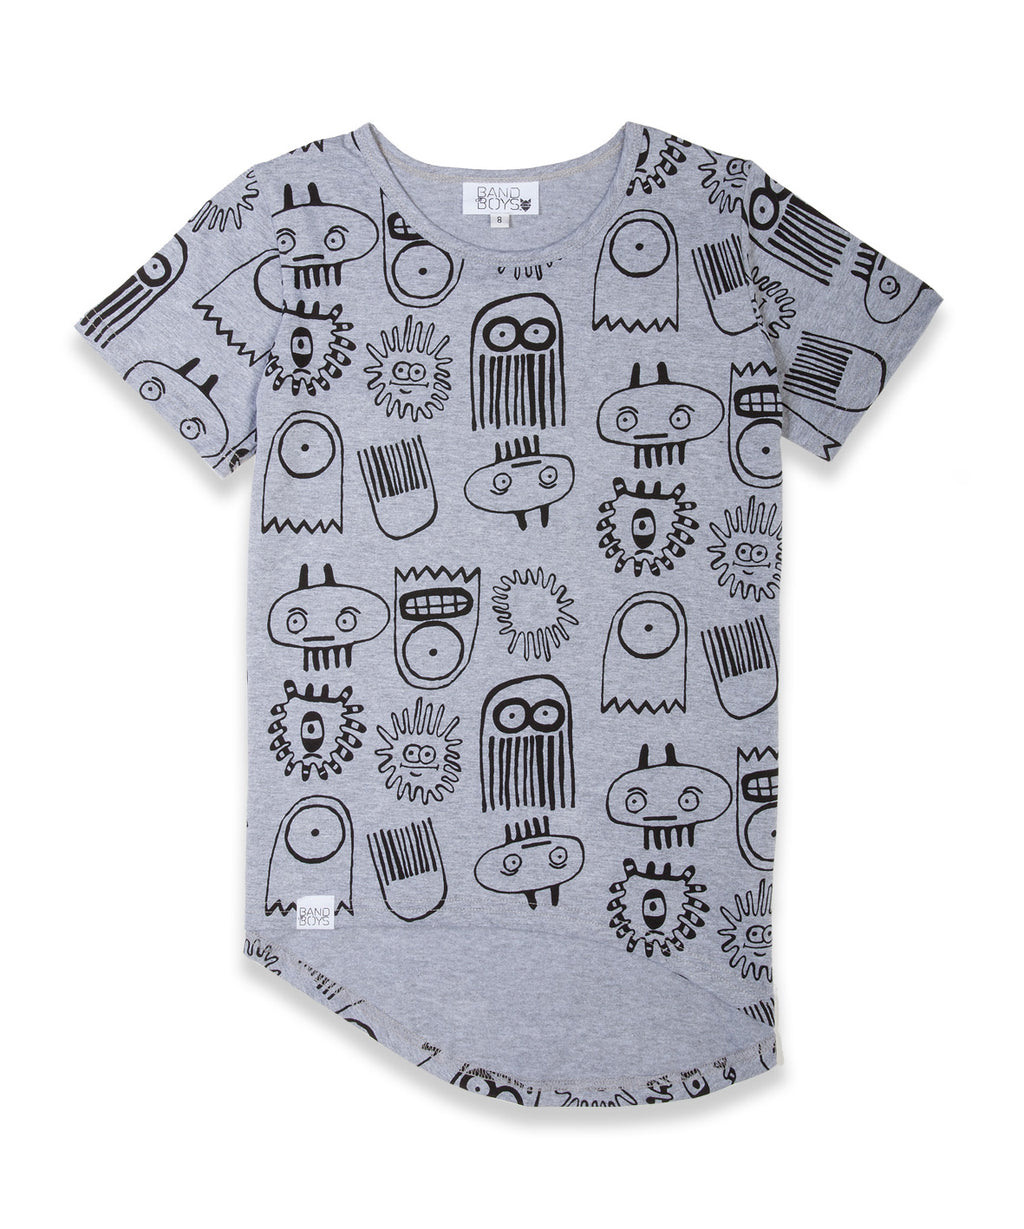 Band of Boys Tee Deep Sea Marle Grey - Little Entourage Children's Boutique